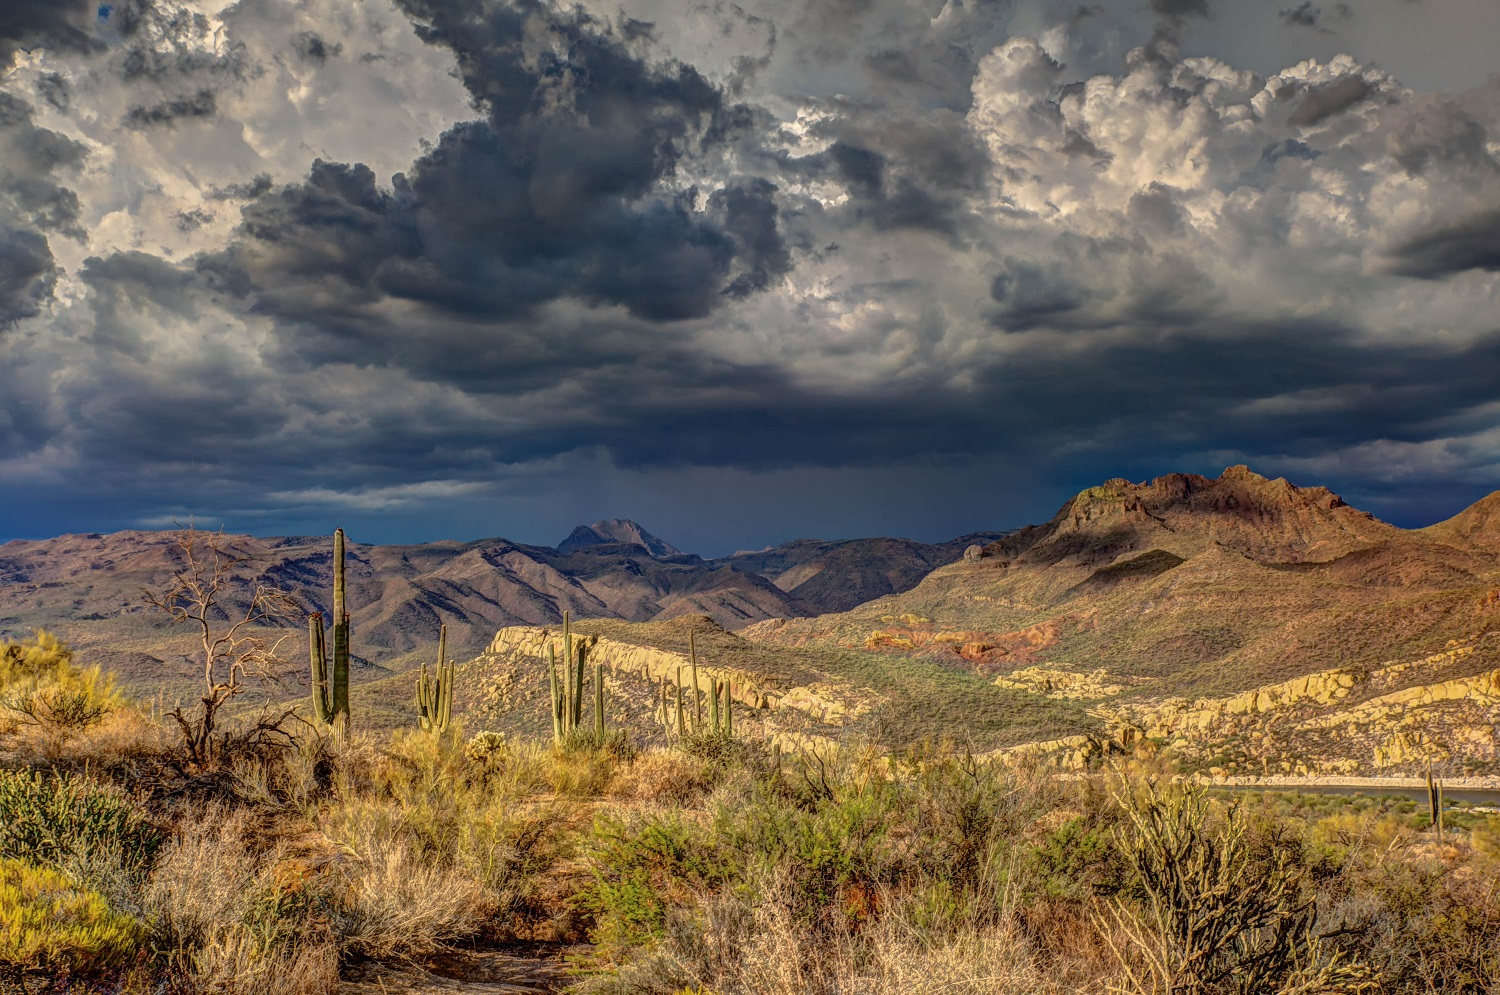 Image looking toward a mountain range with cactus and dark grey and blue clouds above.